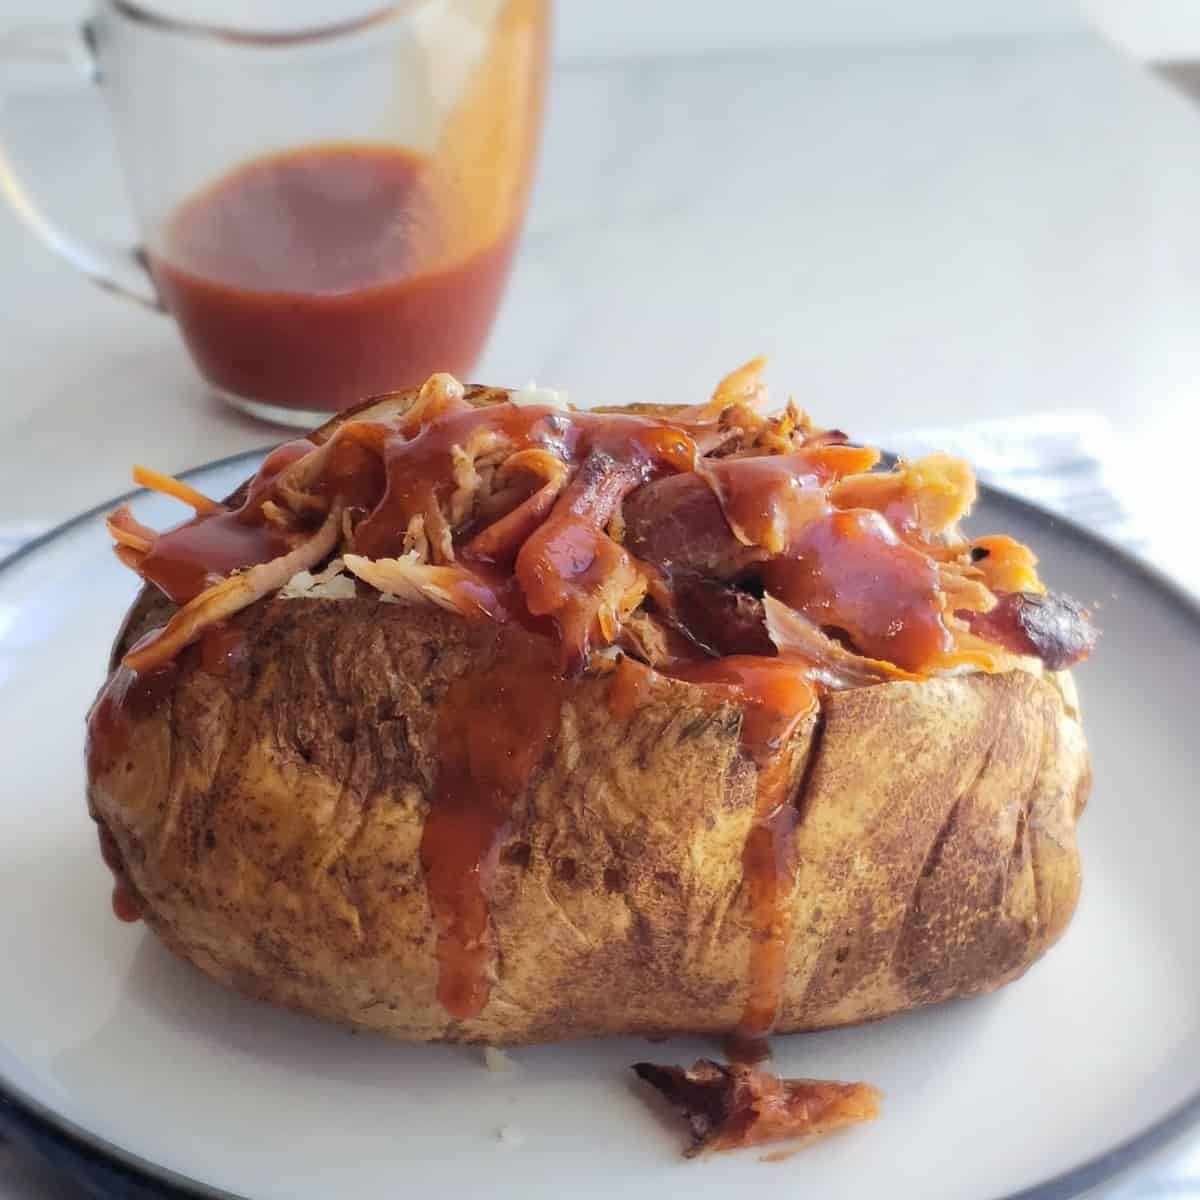 Baked potato stuffed with meat covered in sauce on a white plate. A clear tiny pitcher of bbq sauce in background with sauce dripping down the side